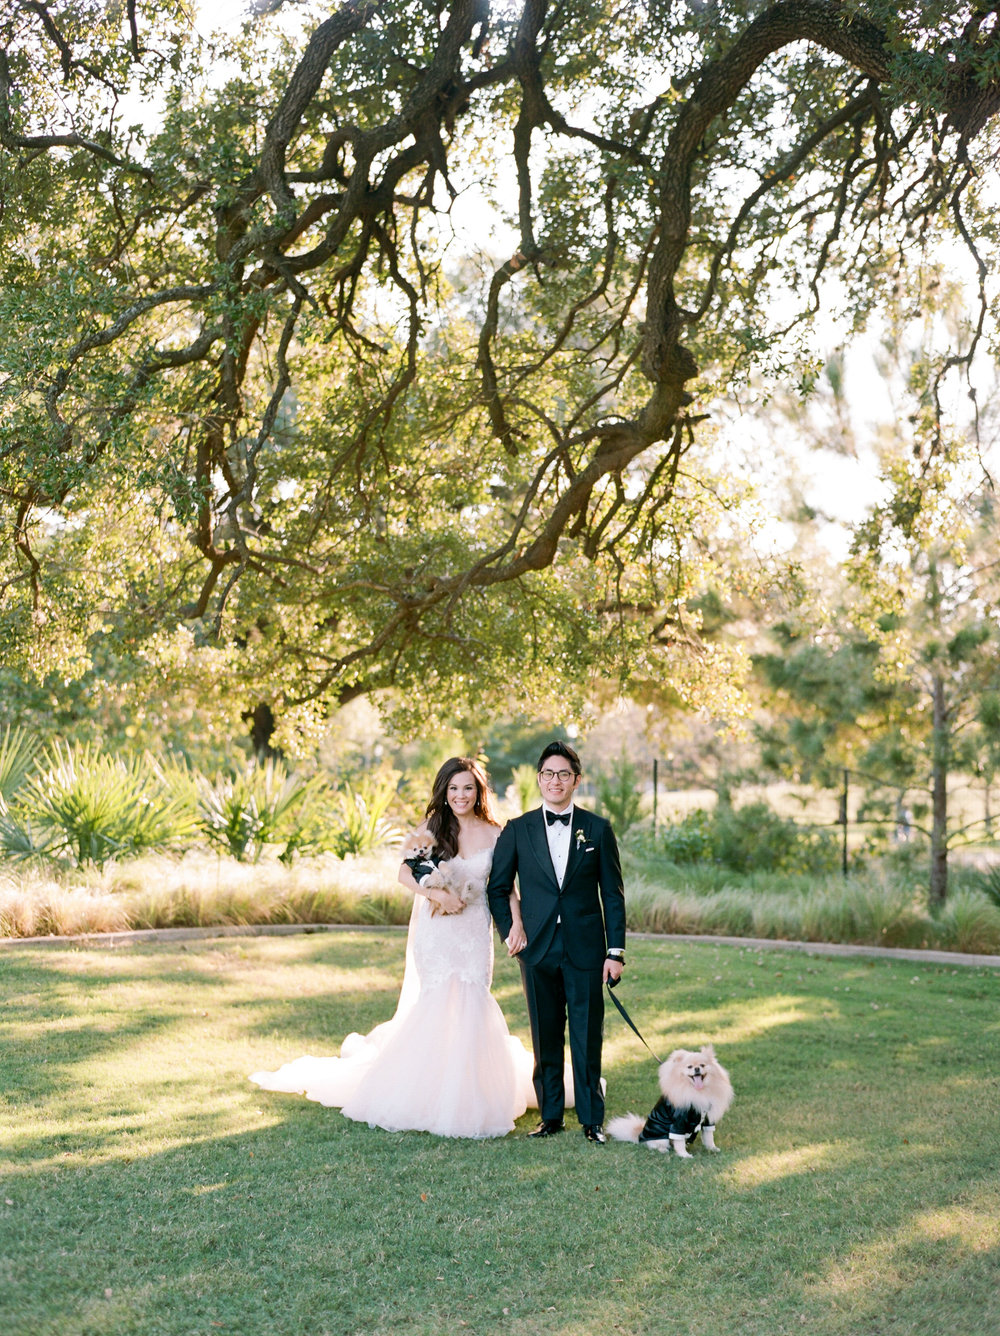 Martha-Stewart-Wedding-Dana-Fernandez-Photography-Josh-Texas-Film-Houston-Wedding-Fine-Art-Photographer-McGovern-Centennial-Gardens-Top-Best-64.jpg